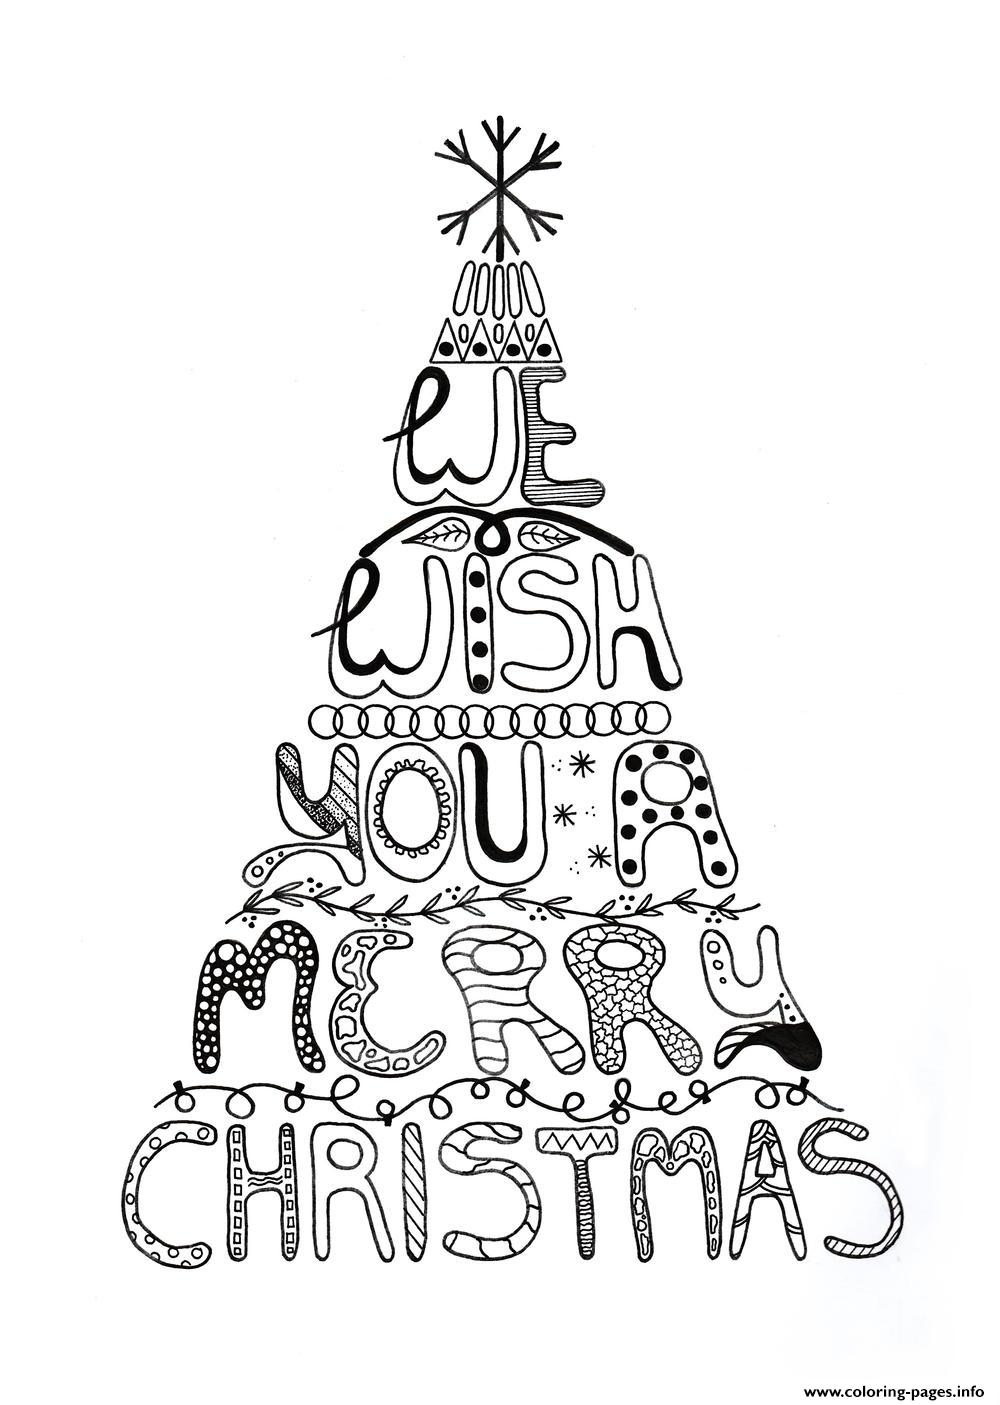 merry christmas adult tree coloring pages printable. Black Bedroom Furniture Sets. Home Design Ideas